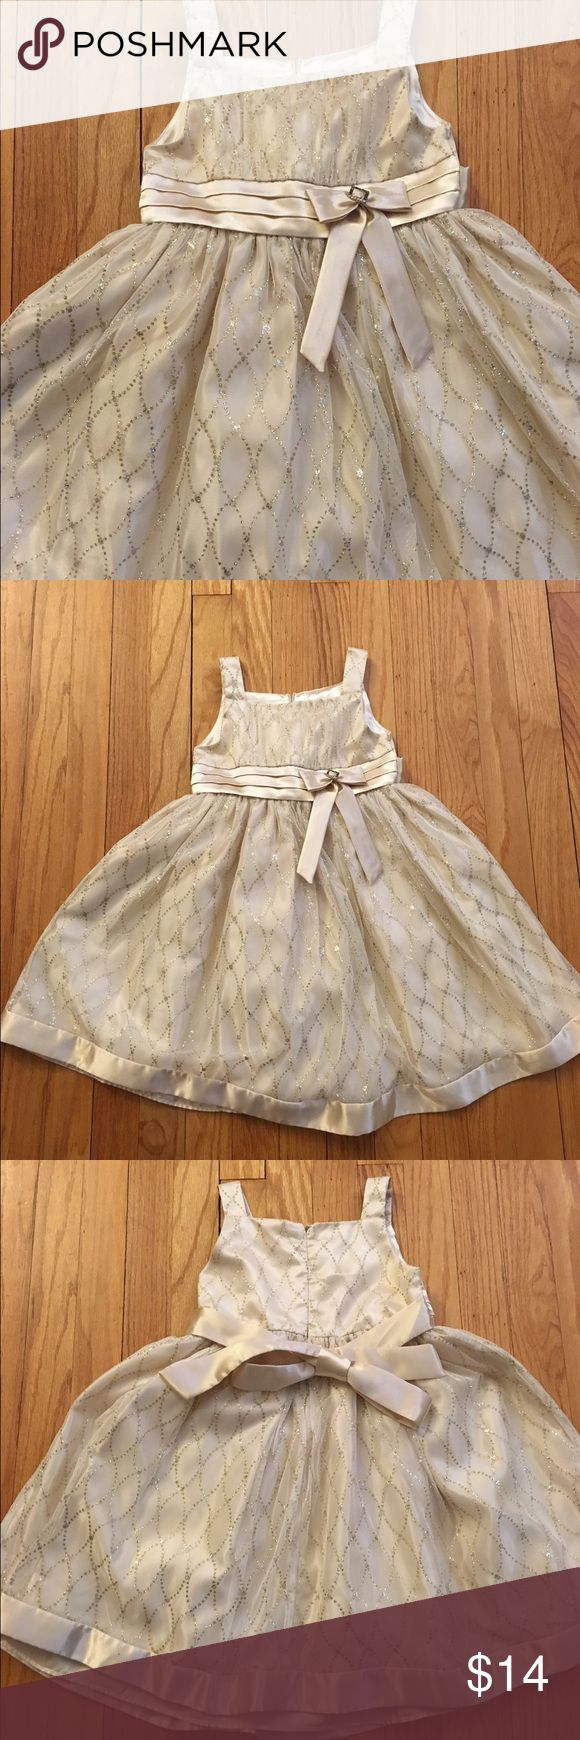 Beautiful Sparkly dress This gorgeous dress was worn once and is in perfect shape. Size 5 girls. Cream dress with lovely silver and gold gems that sparkle. Tie dash in back. LOVE Dresses Formal